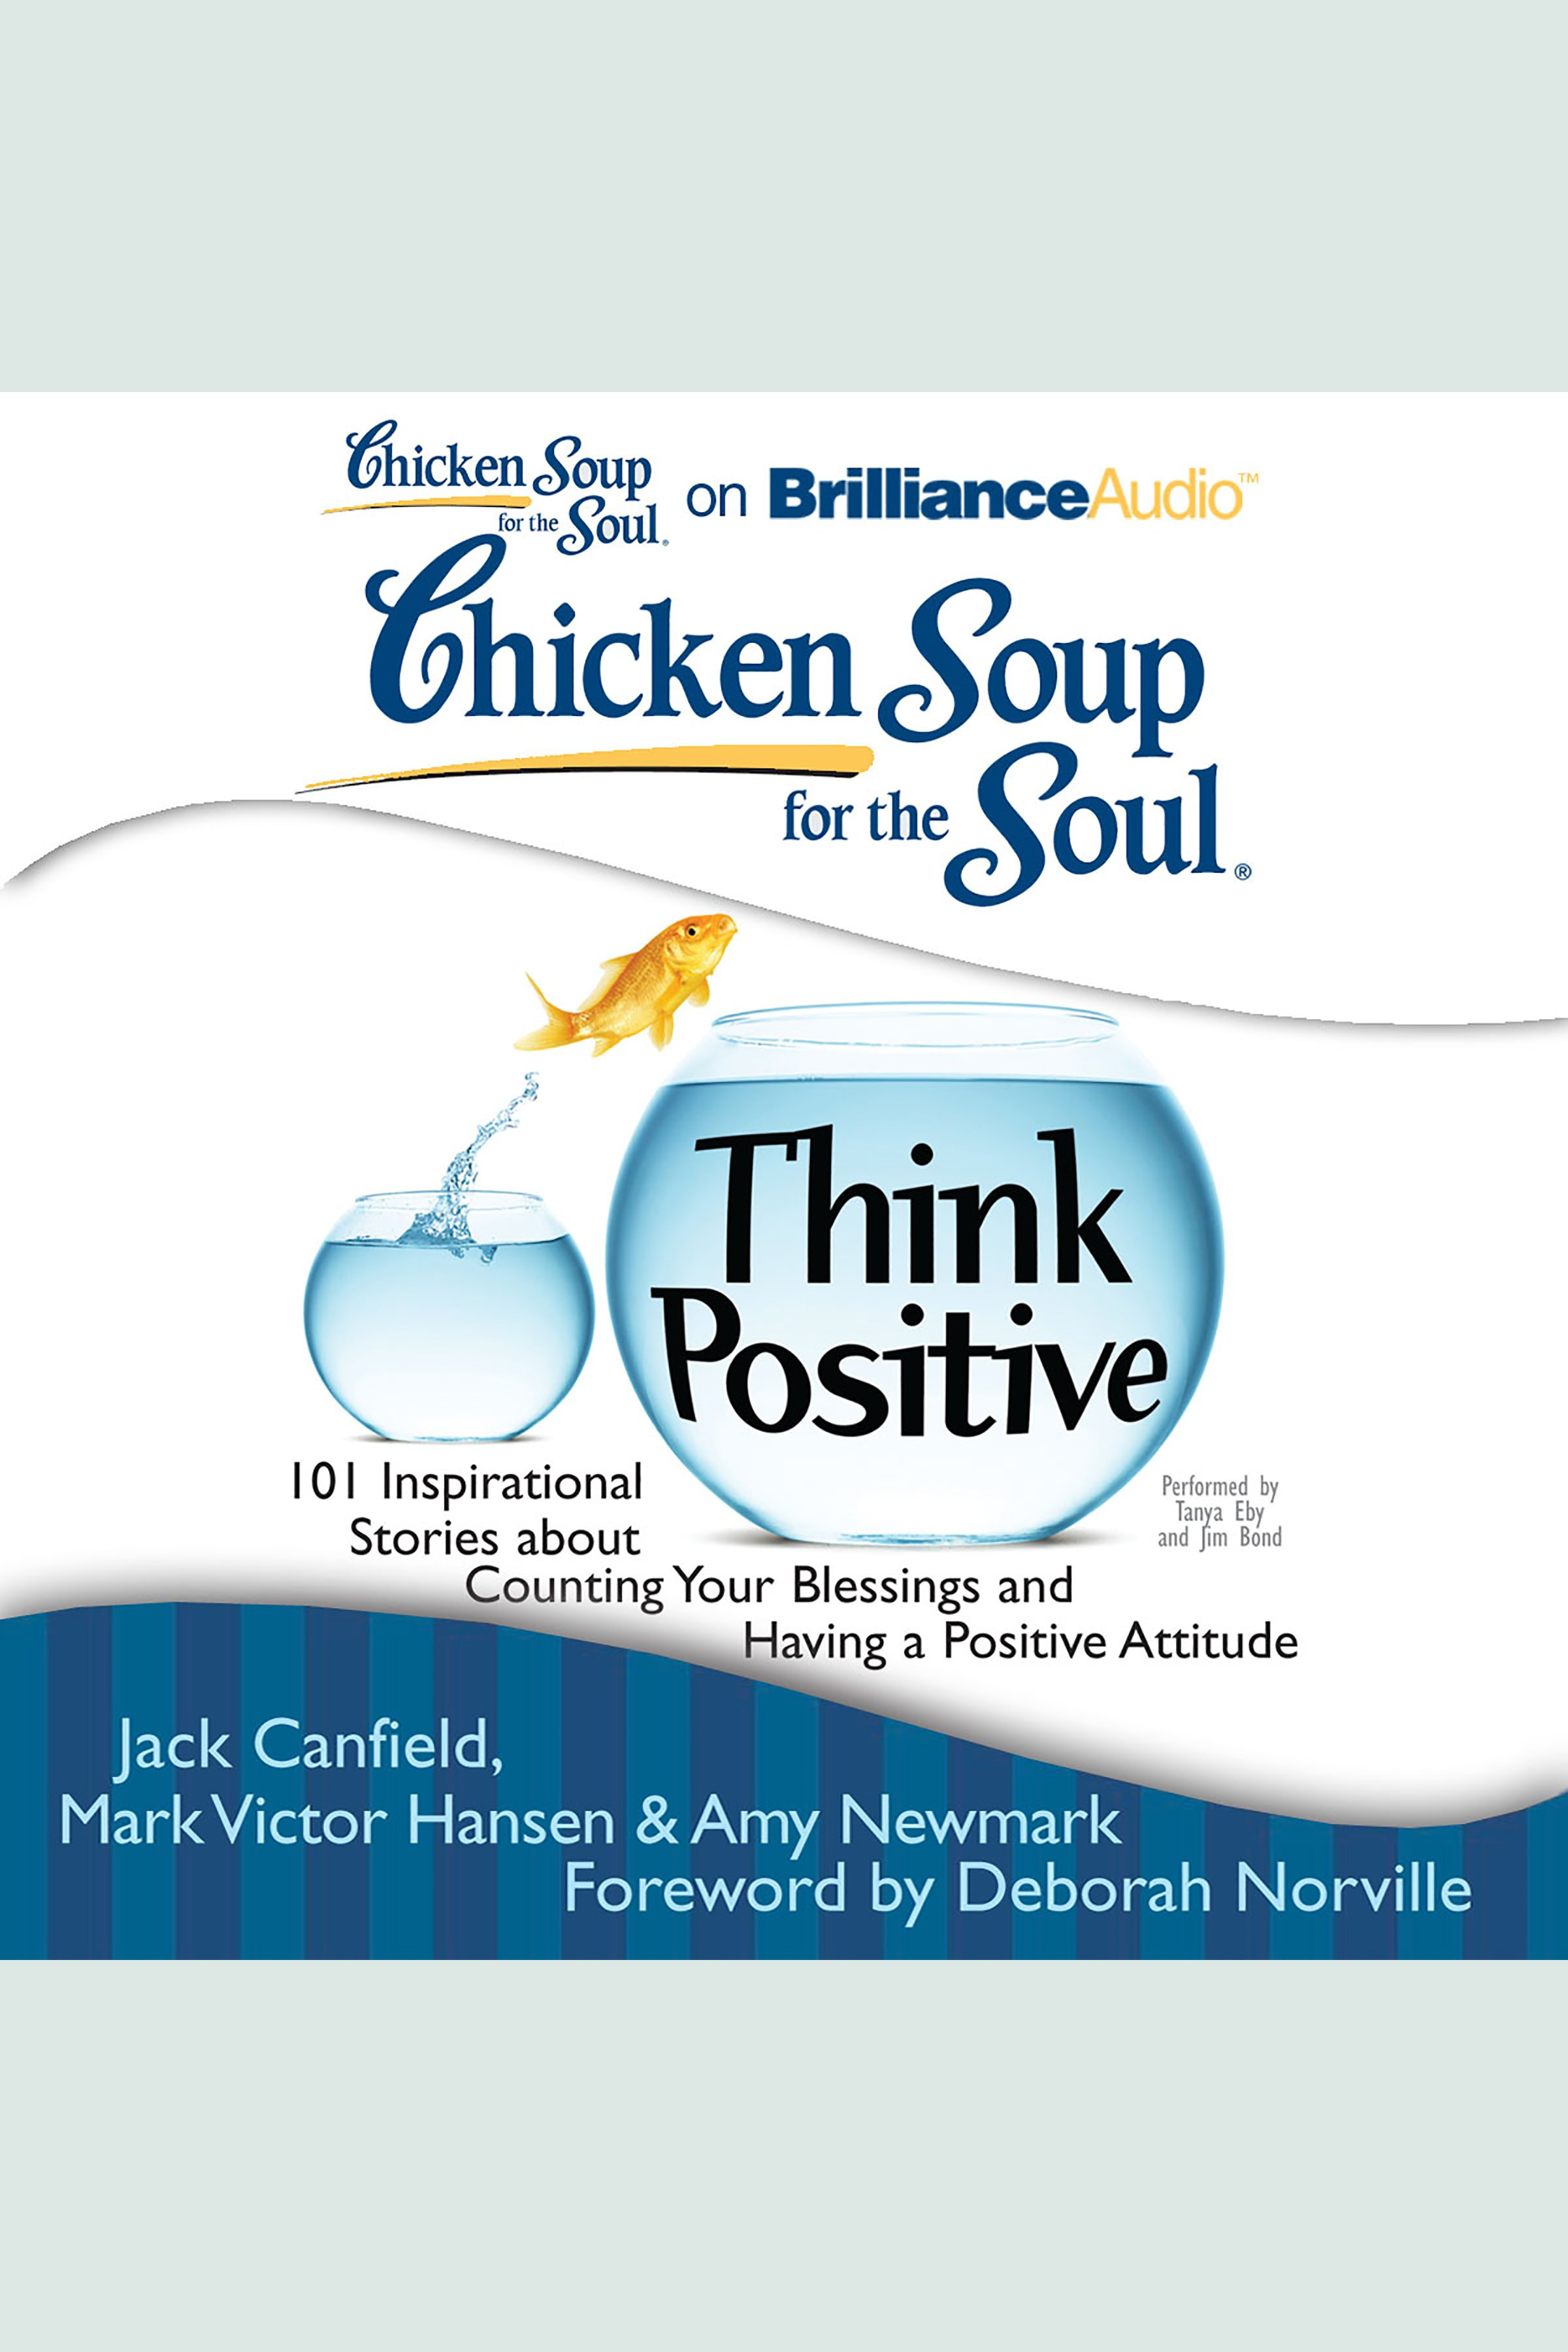 Chicken Soup for the Soul: Think Positive:101 Inspirational Stories about Counting Your Blessings and Having a Positive Attitude